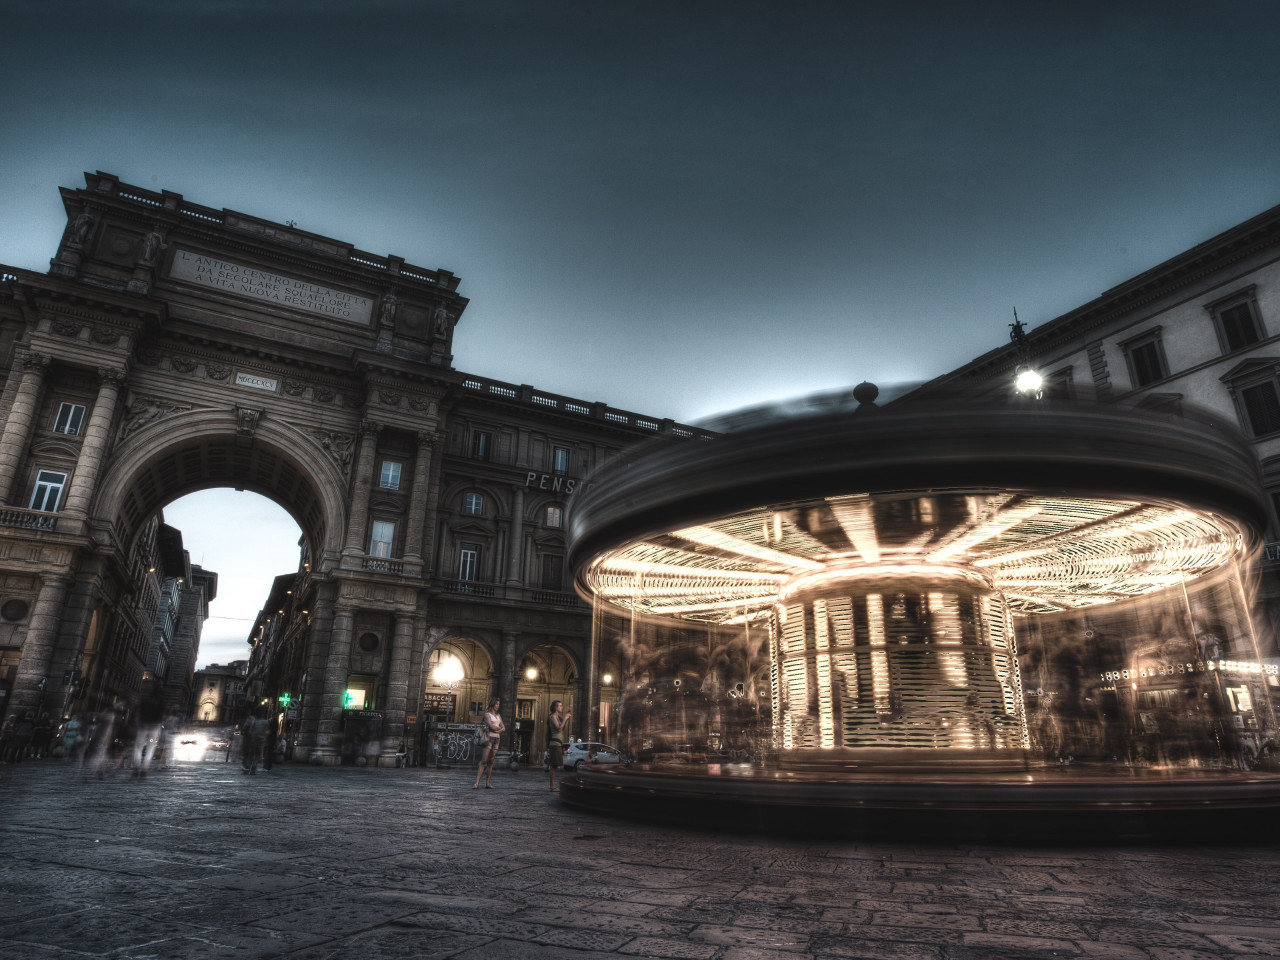 Carousel, people and buildings from Florence wallpaper 1280x960